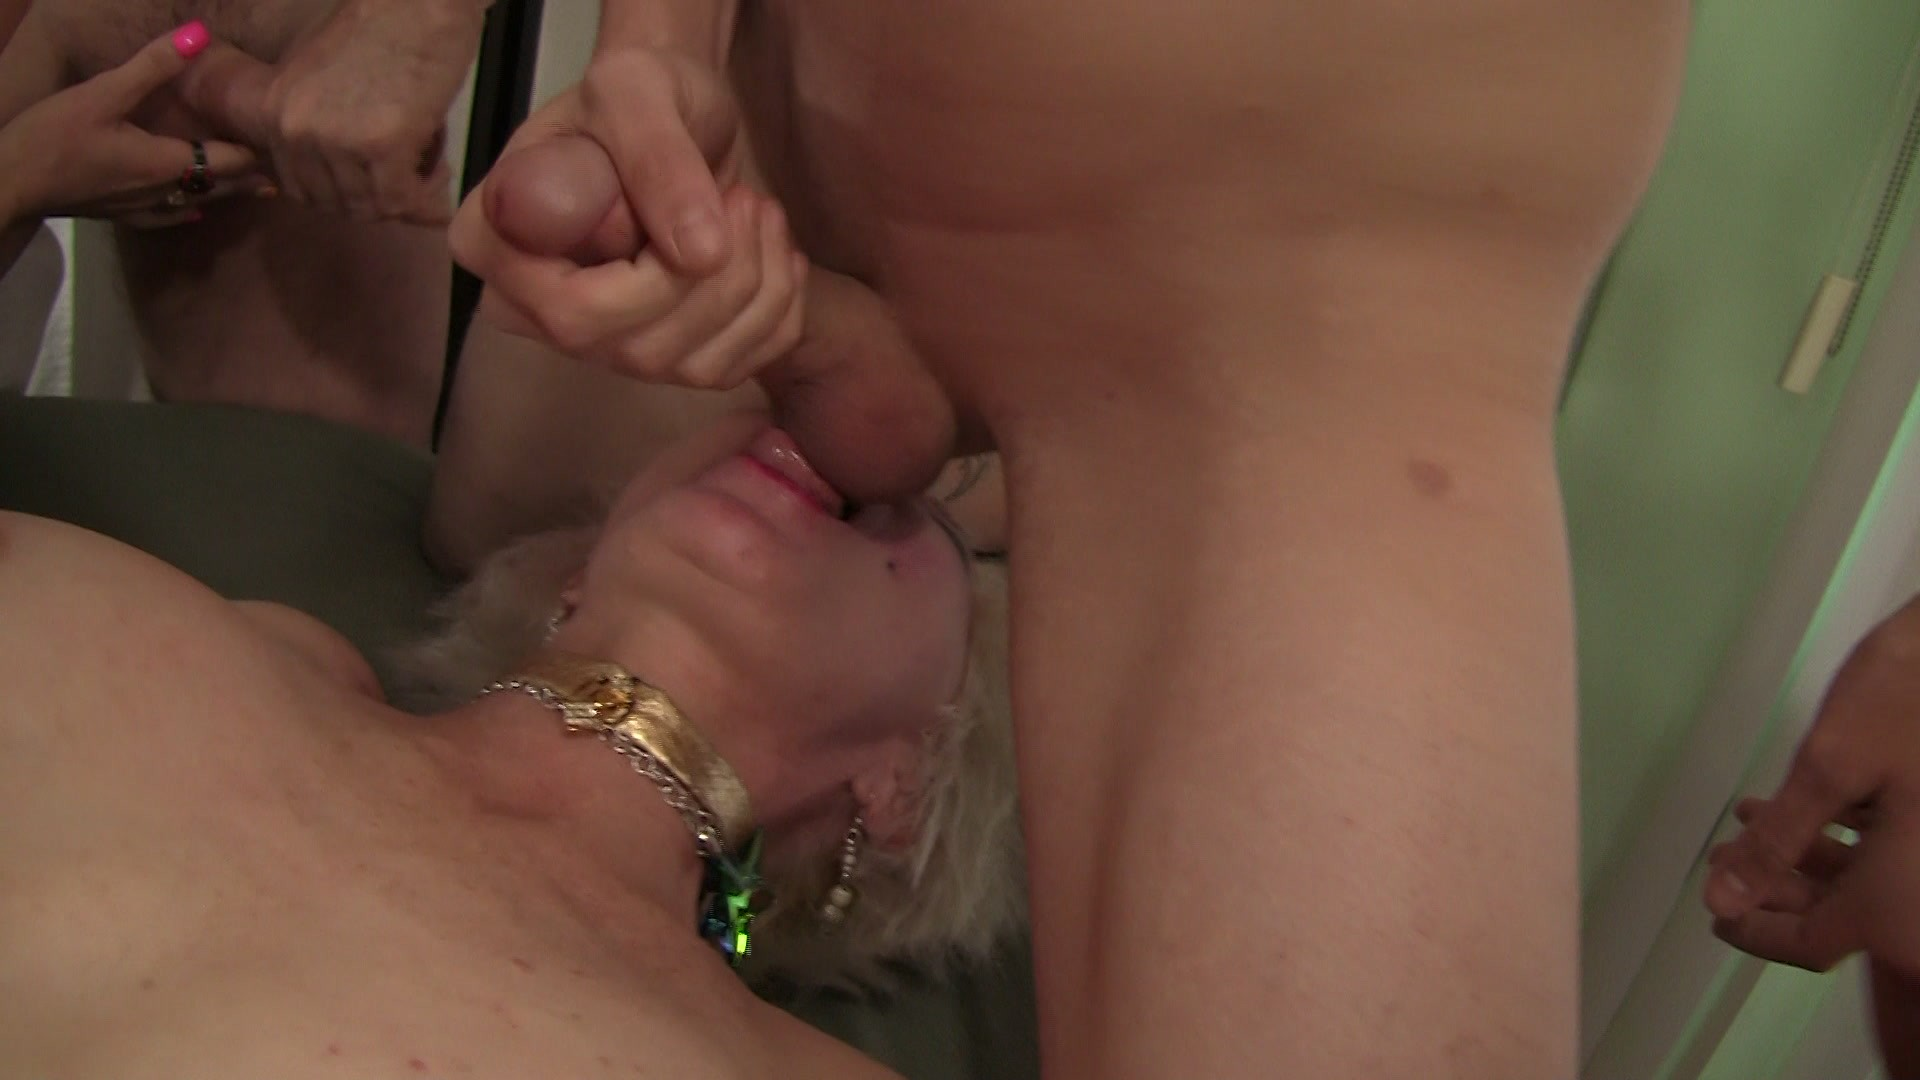 25 minute sloppy head from asian n swallow - 1 part 2